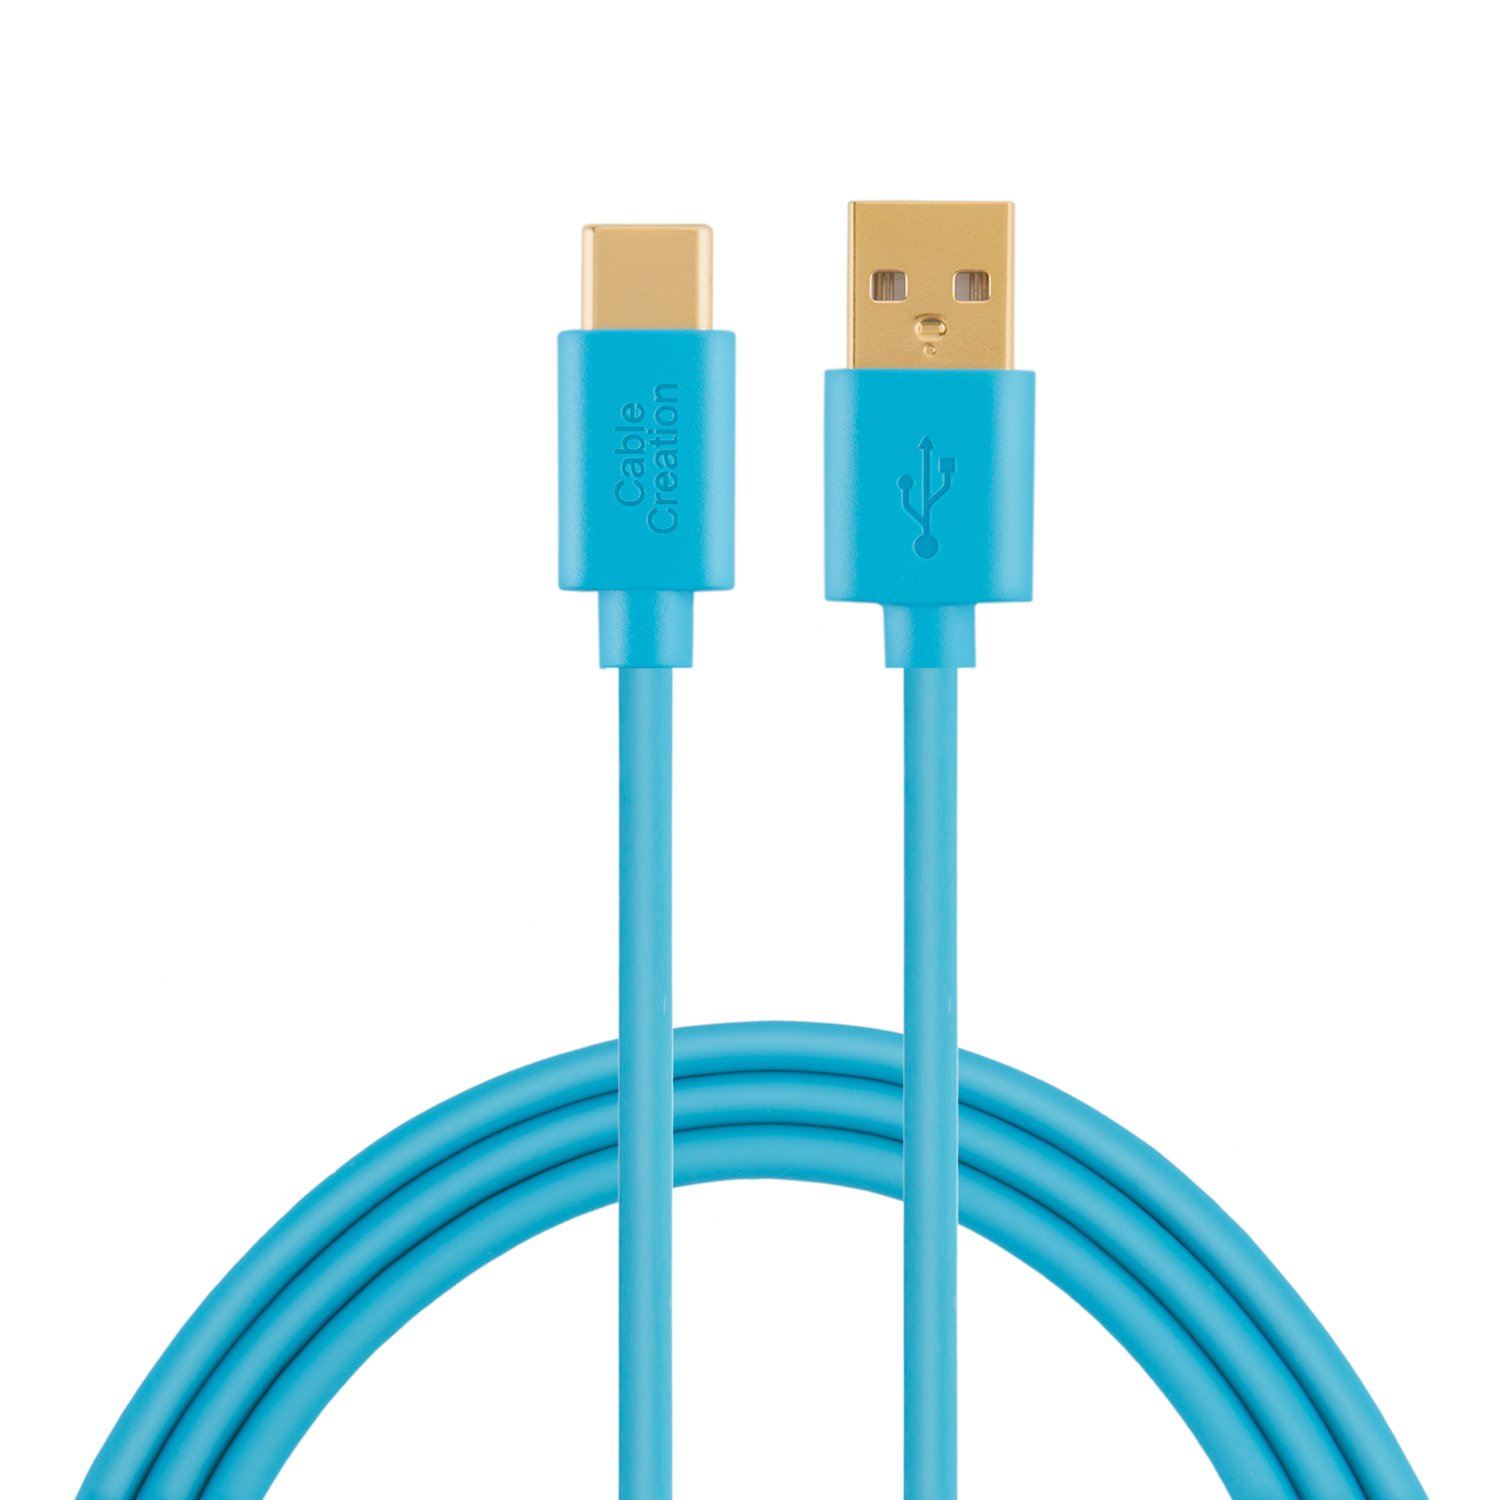 Type USB C Cable, CableCreation 0.8ft Short USB C to USB 2.0 A Cable, for Macbook 12 inch, Google Nexus 5 X 6P, Pixel C, Nokia N1 Tablet etc, Black CC0229